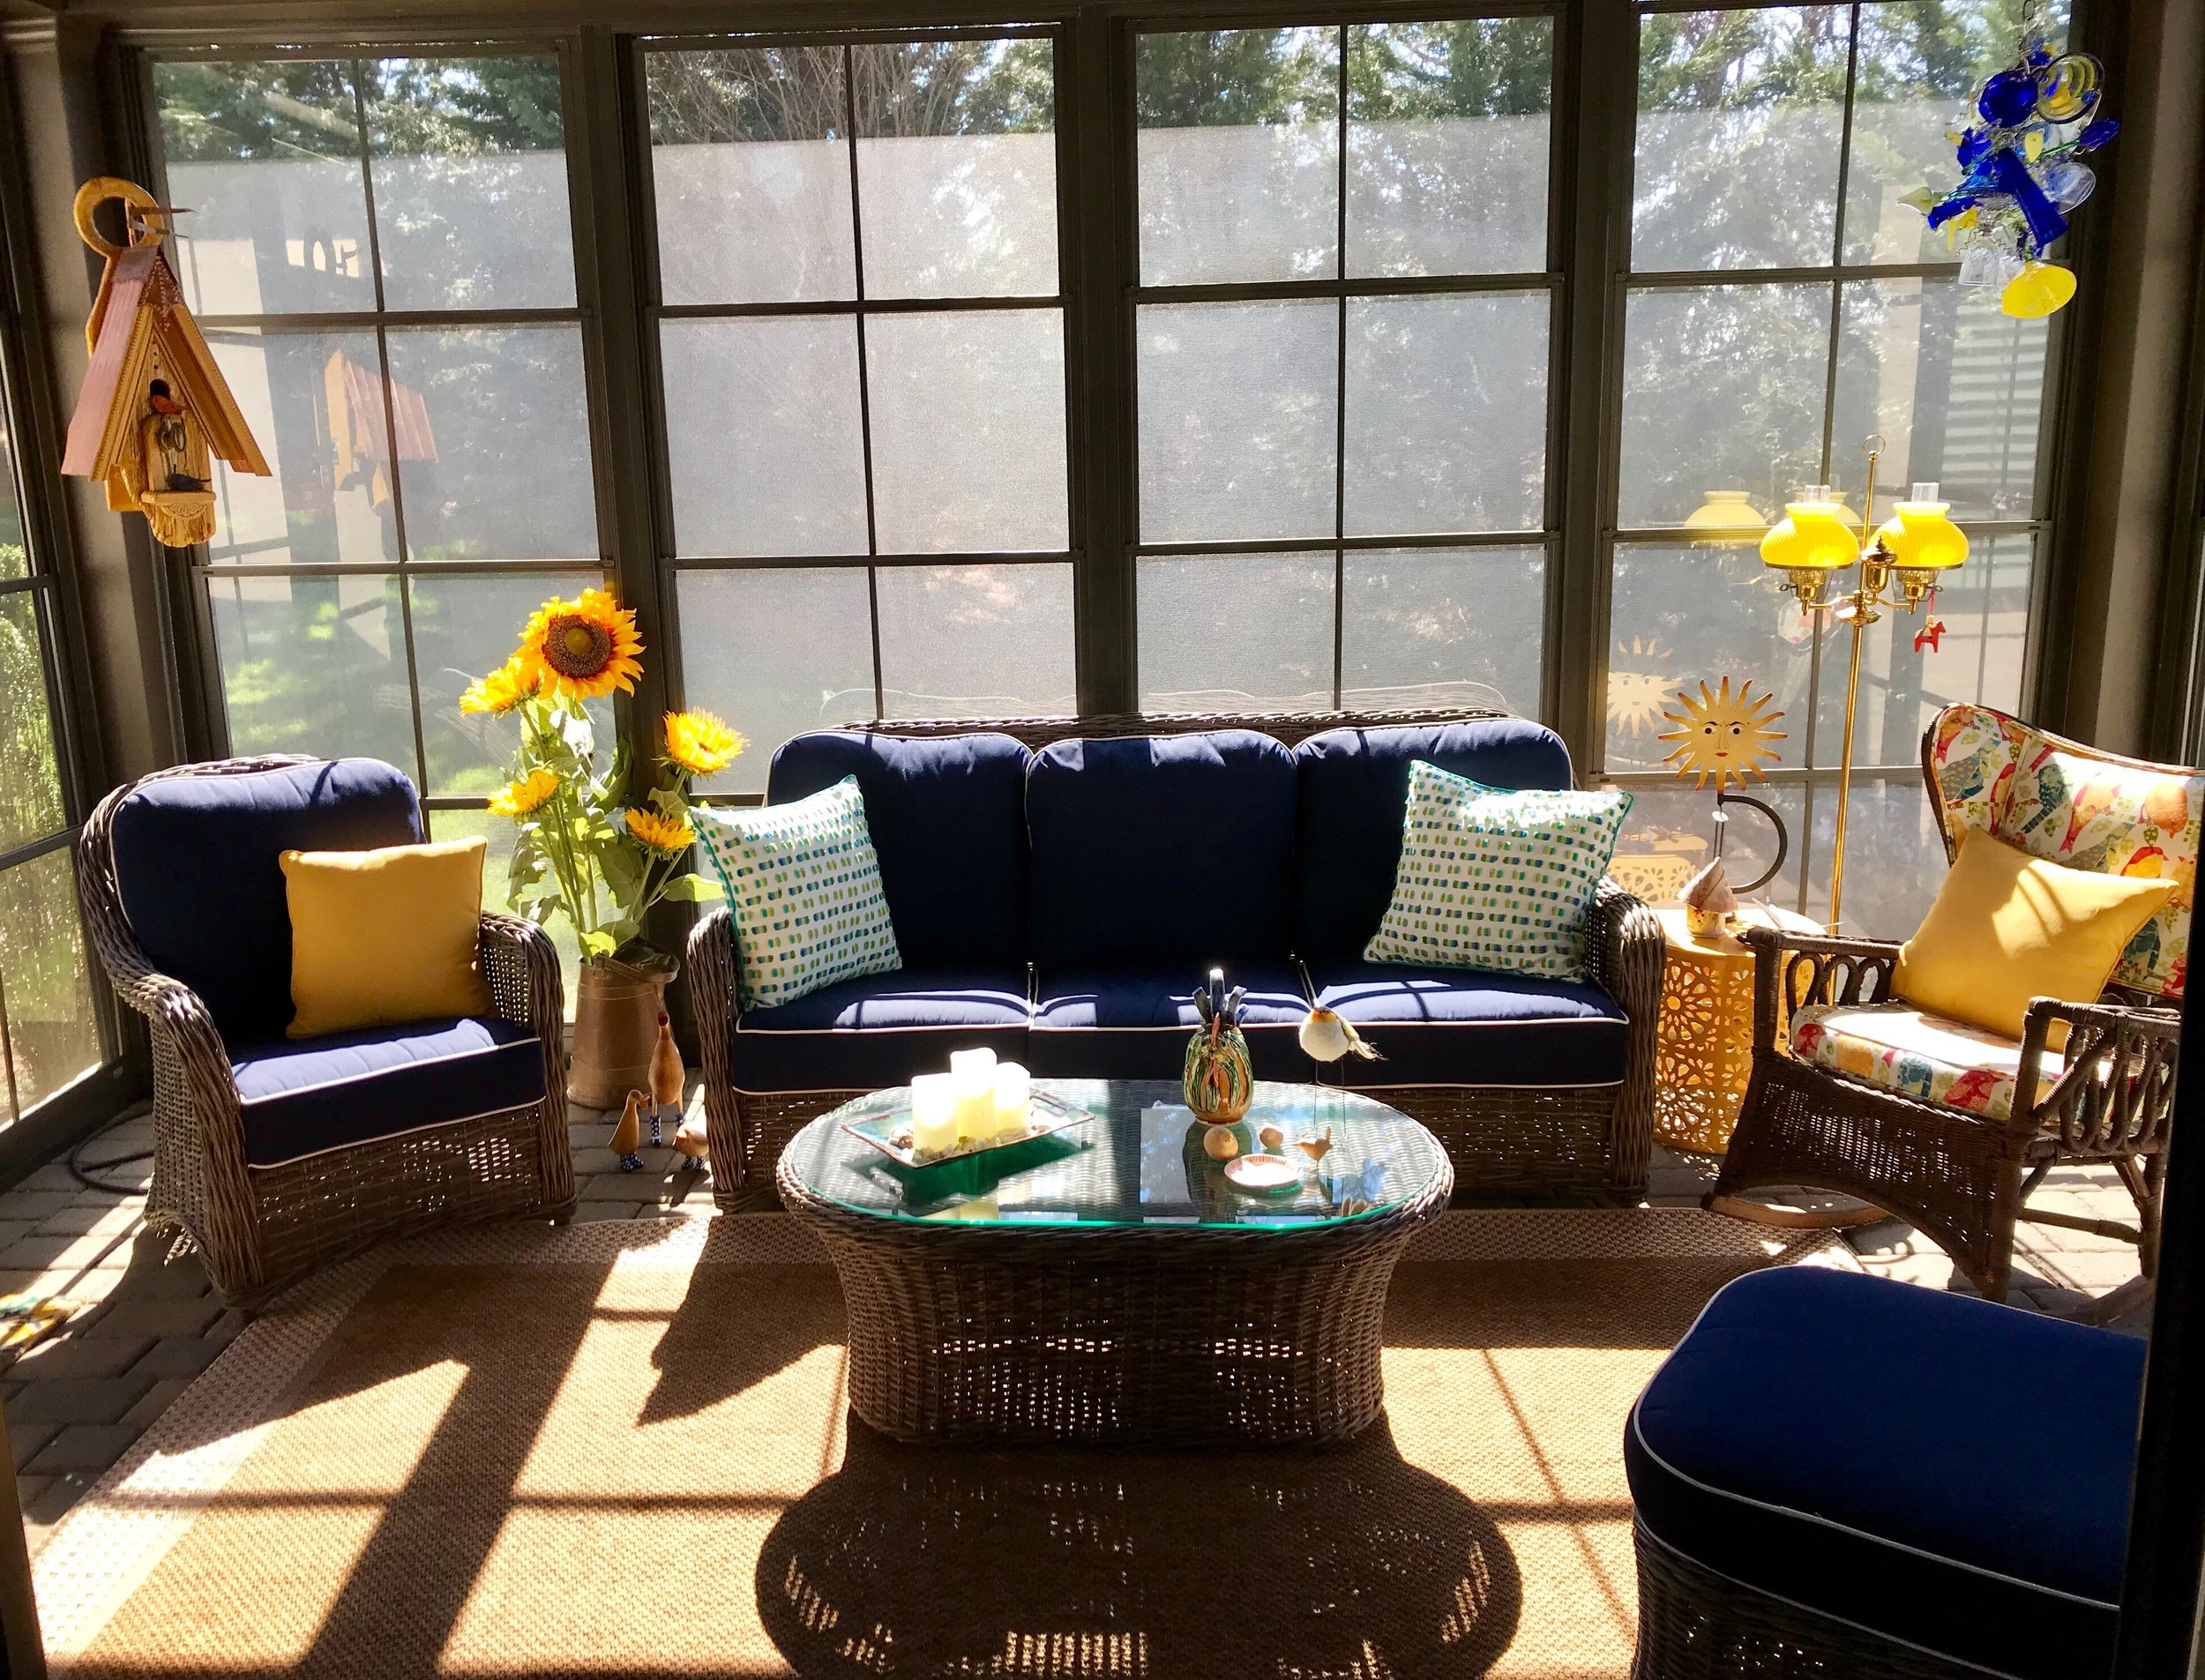 A wonderful sun room that Susie converted from a screened in porch to be able to use year round.